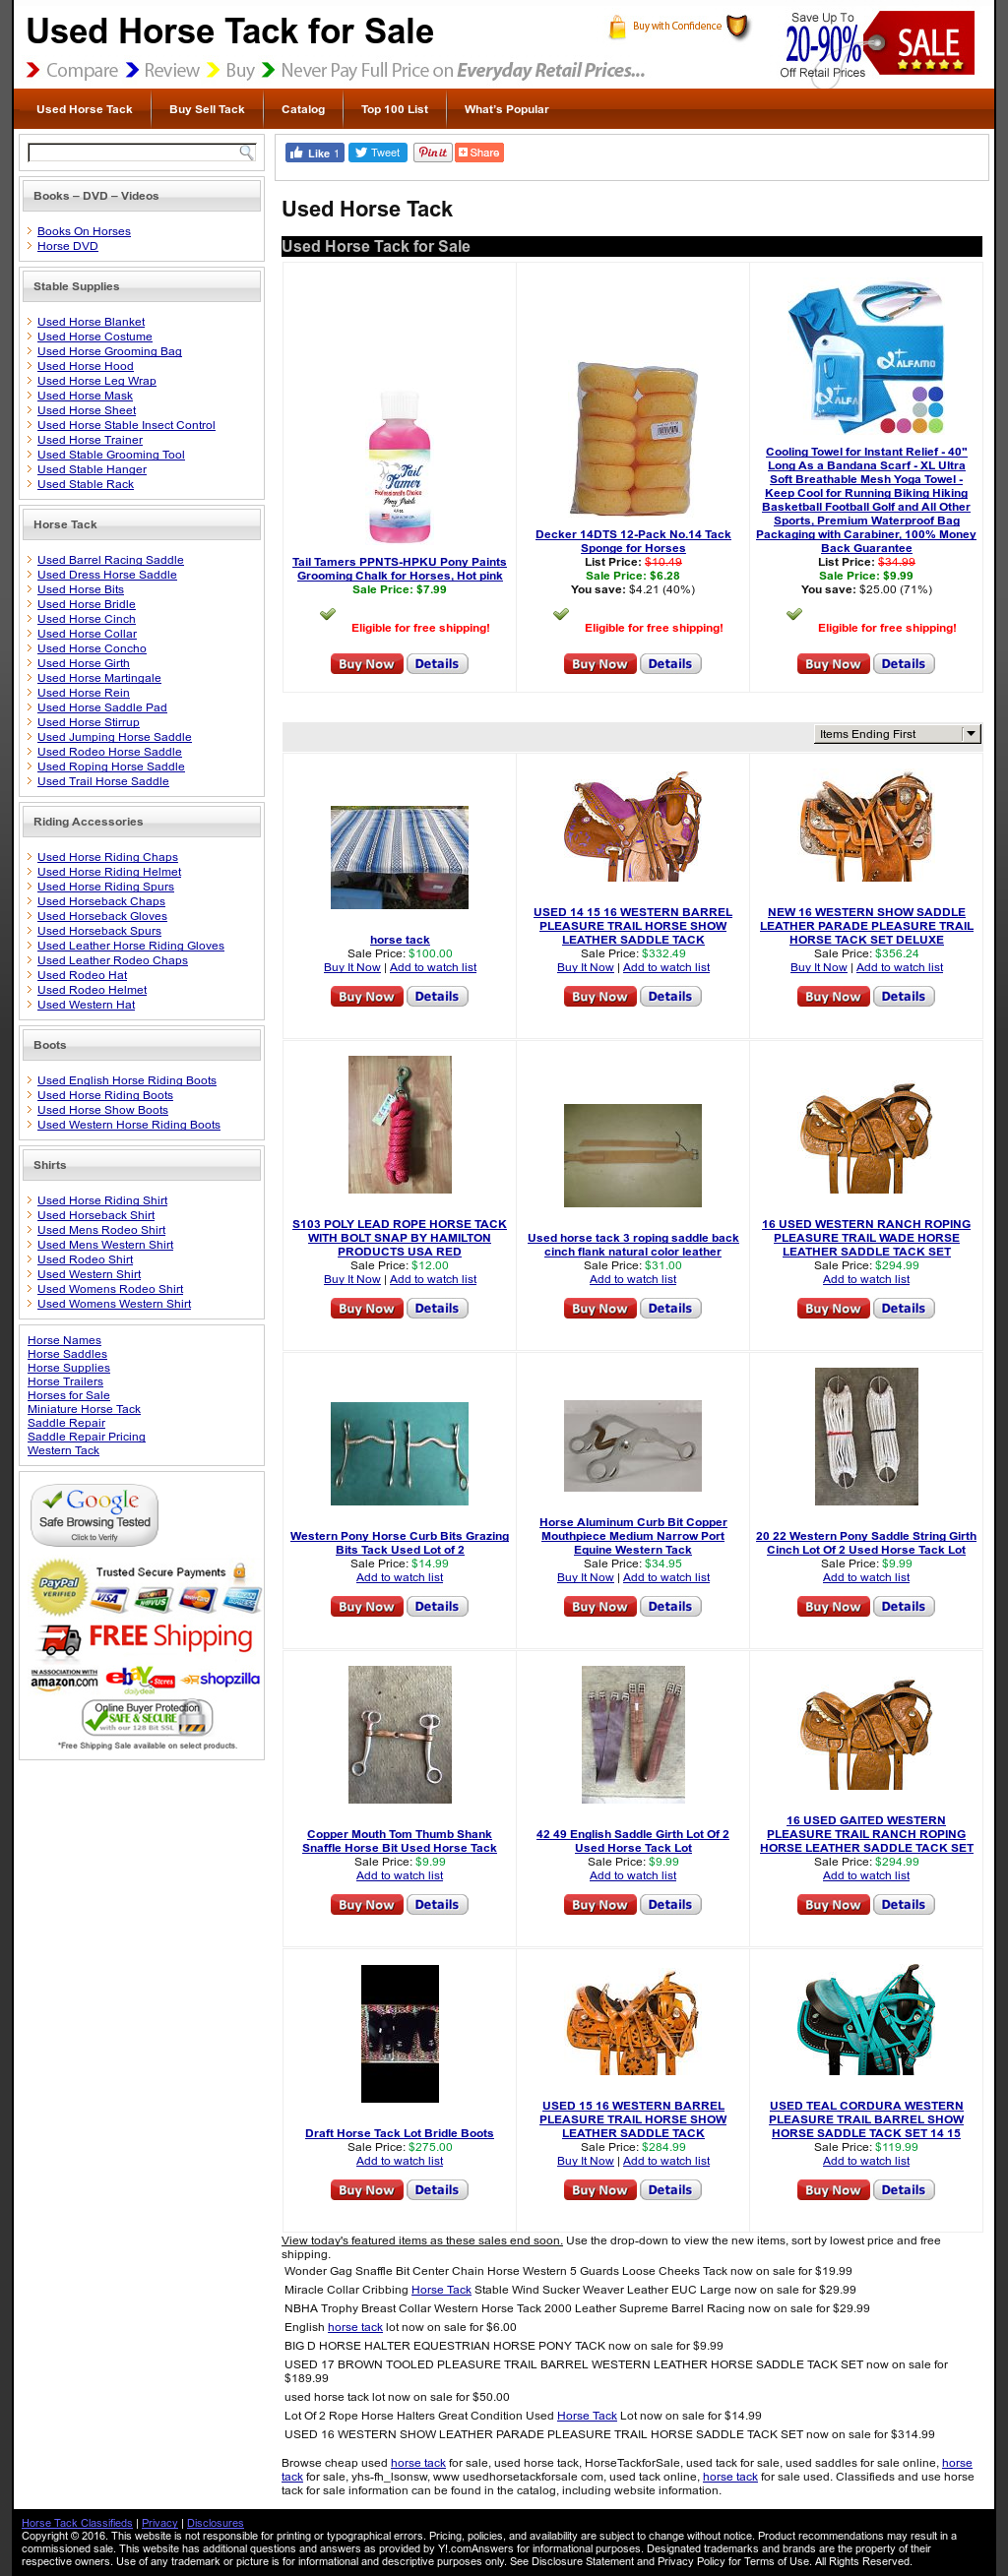 Used Horse Tack - Omnicorp Competitors, Revenue and